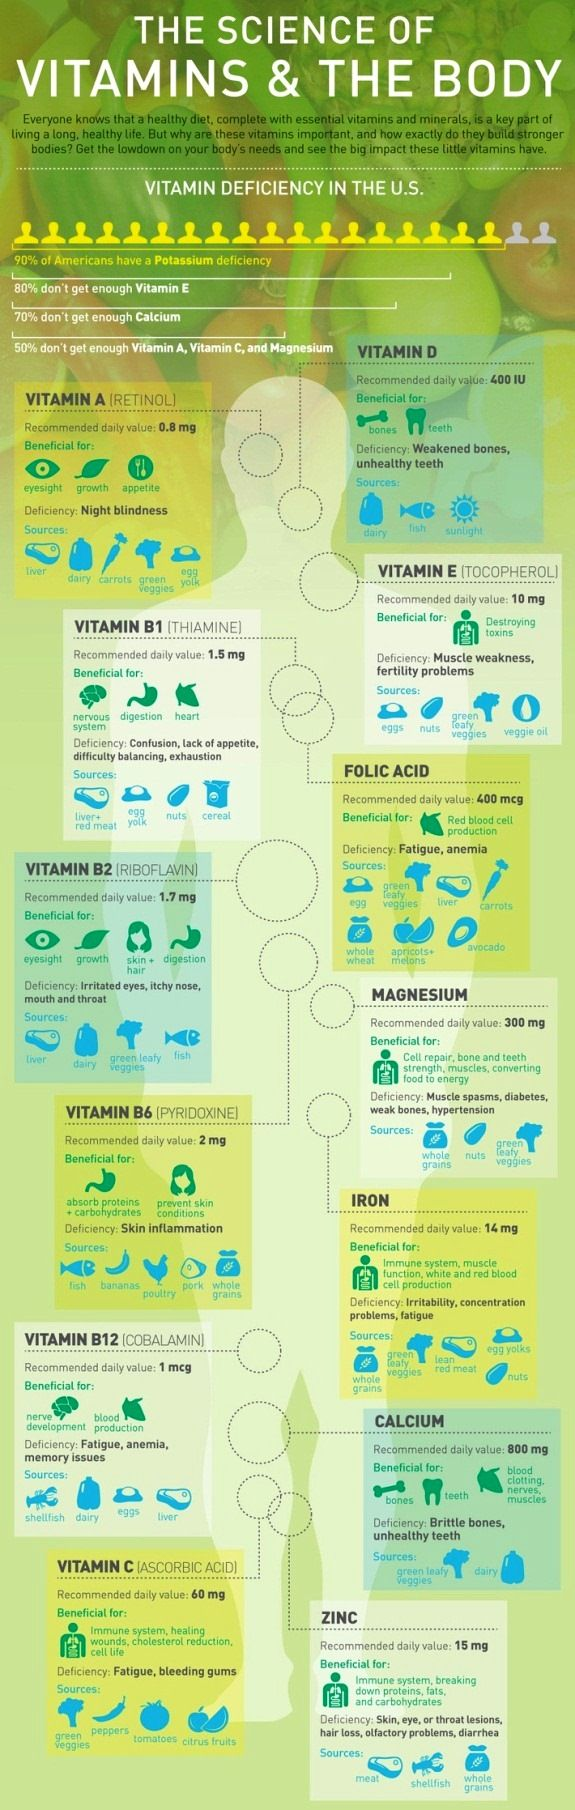 Vitamins & The Body - why they are important